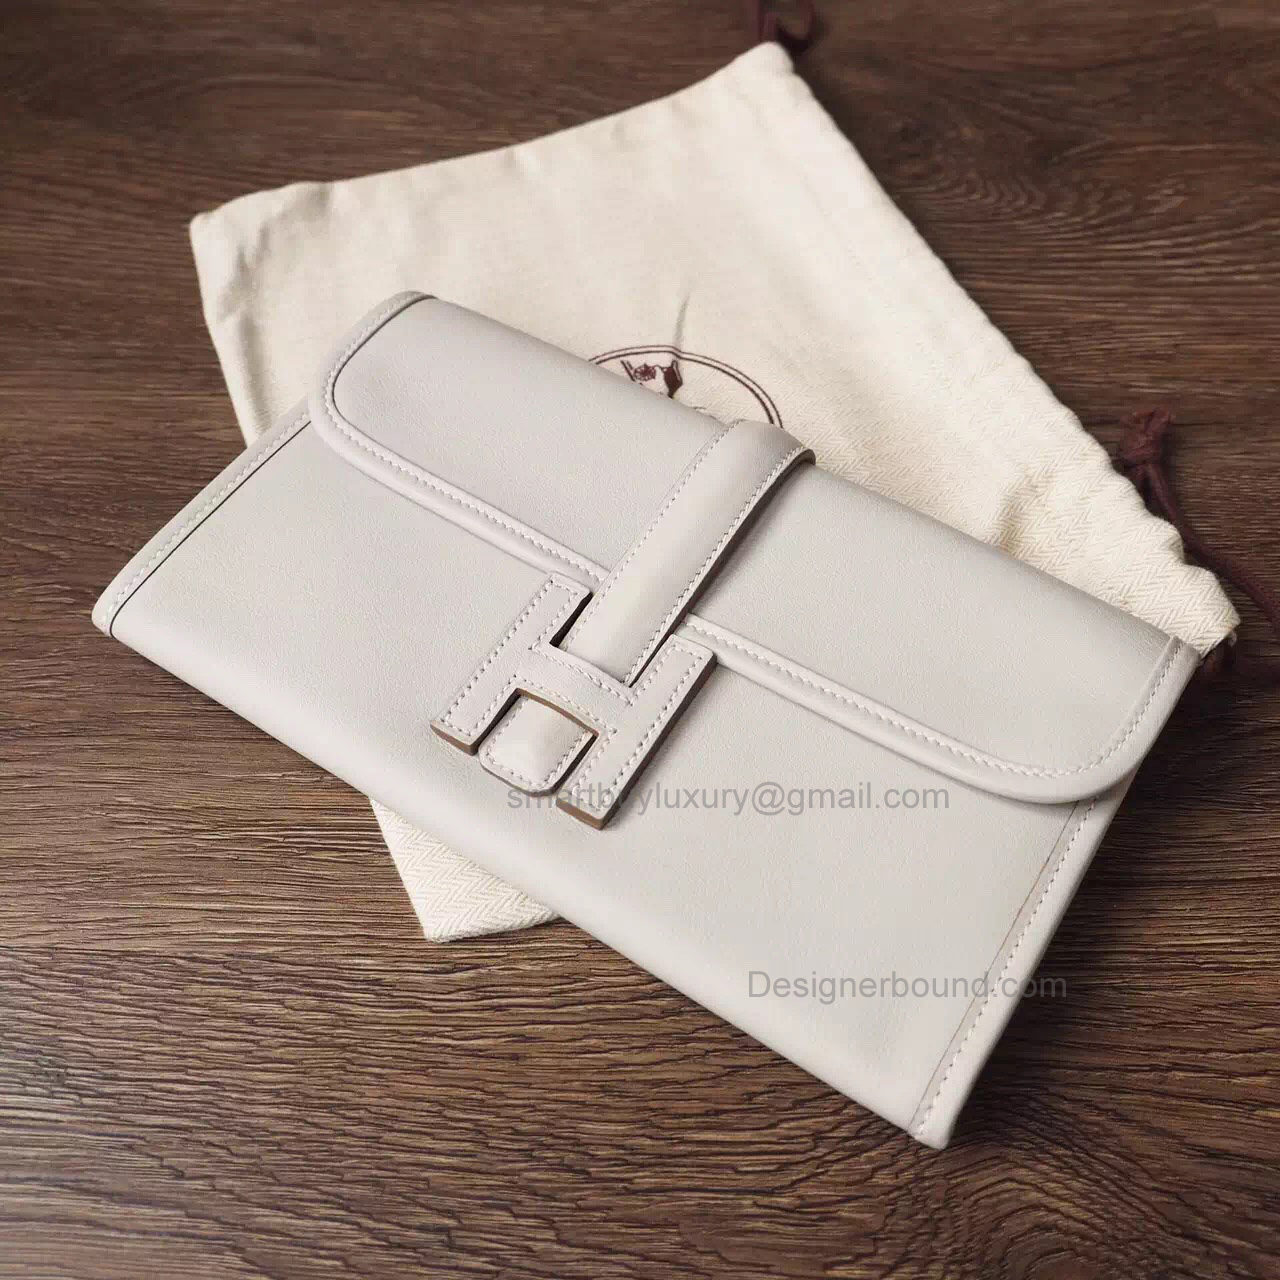 Copy Hermes Jige Duo Mini Clutch Handmade in Pearl Grey ck80 Swift Calfskin